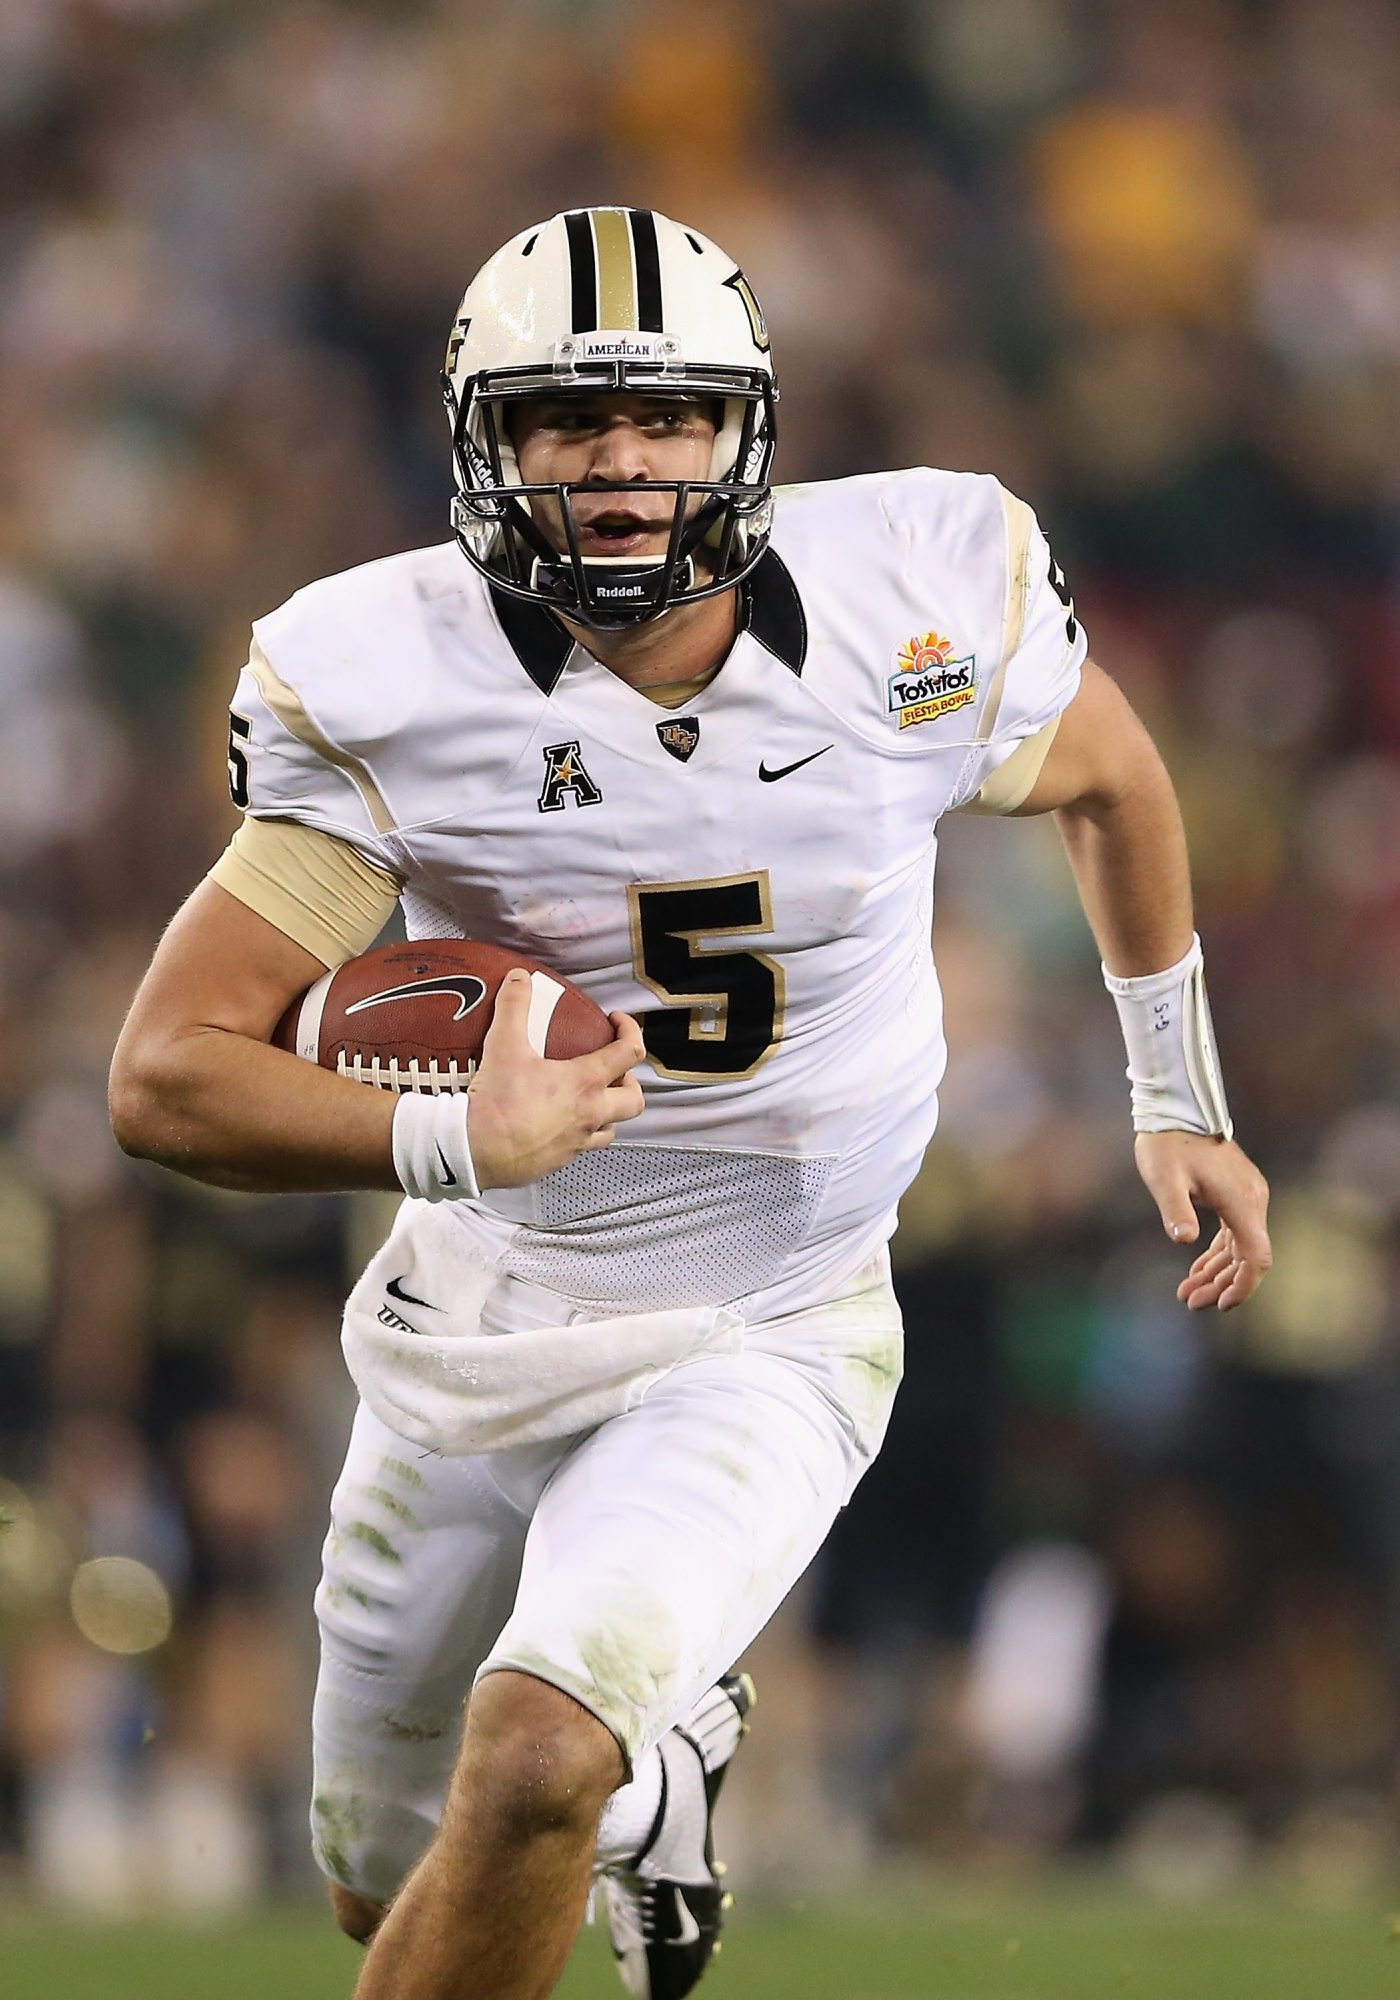 Blake Bortles of UCF figures to be one of the first names called in the NFL draft.